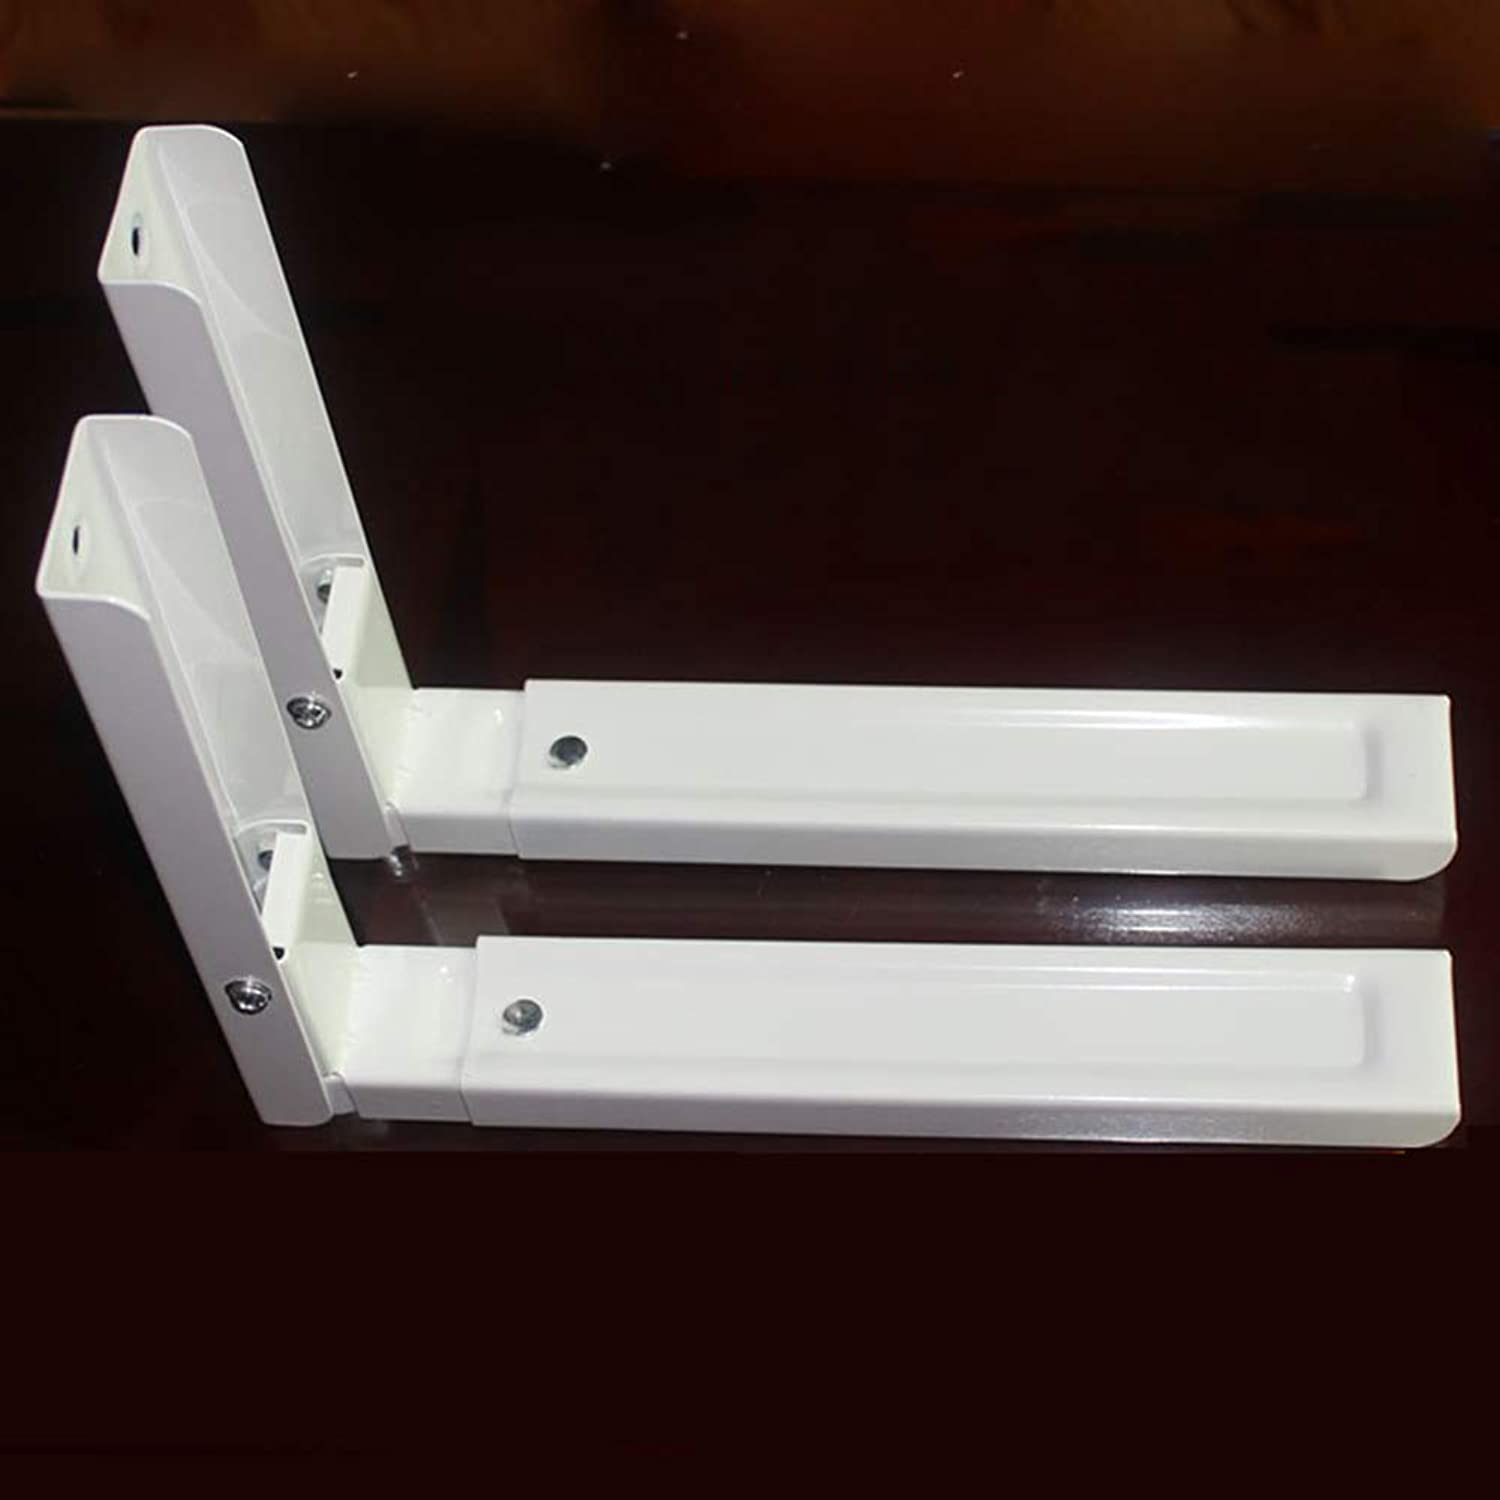 Wall Mounted Kitchen Shelf Holder Rack Bracket Microwave Oven Rack Microwave Oven Stand